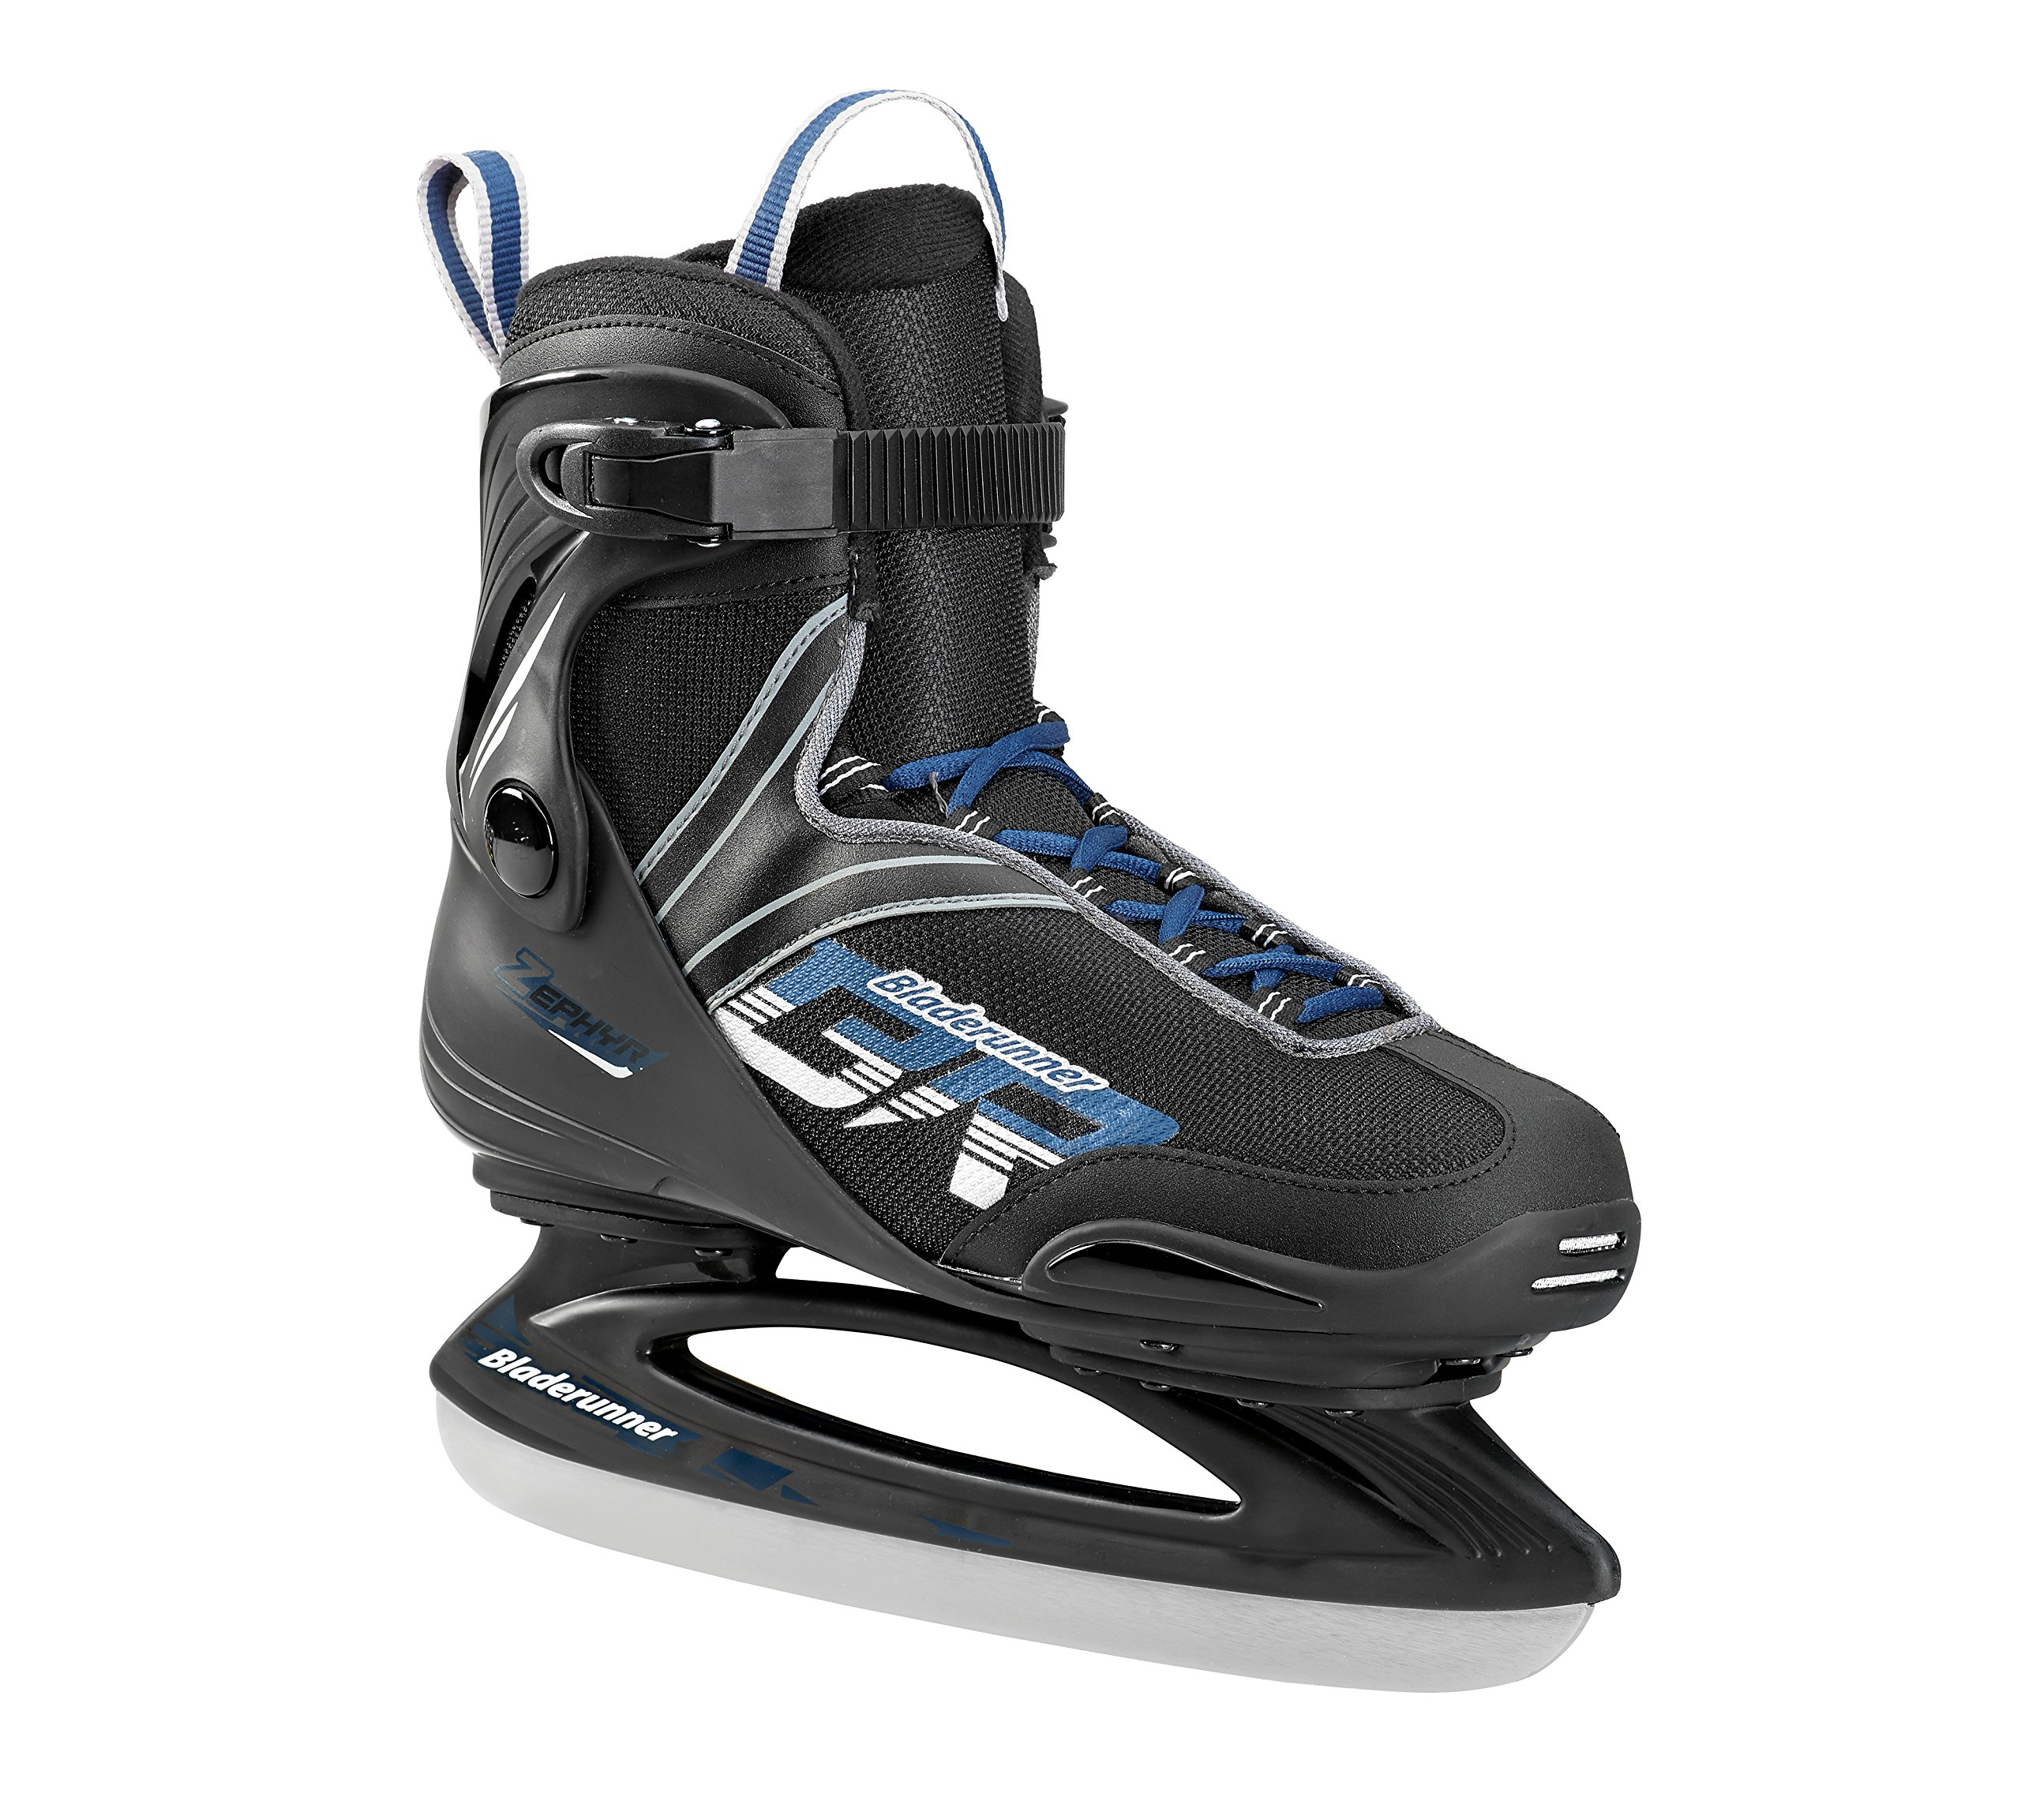 Bladerunner Ice by Rollerblade Zephyr Men's Adult Ice Skates